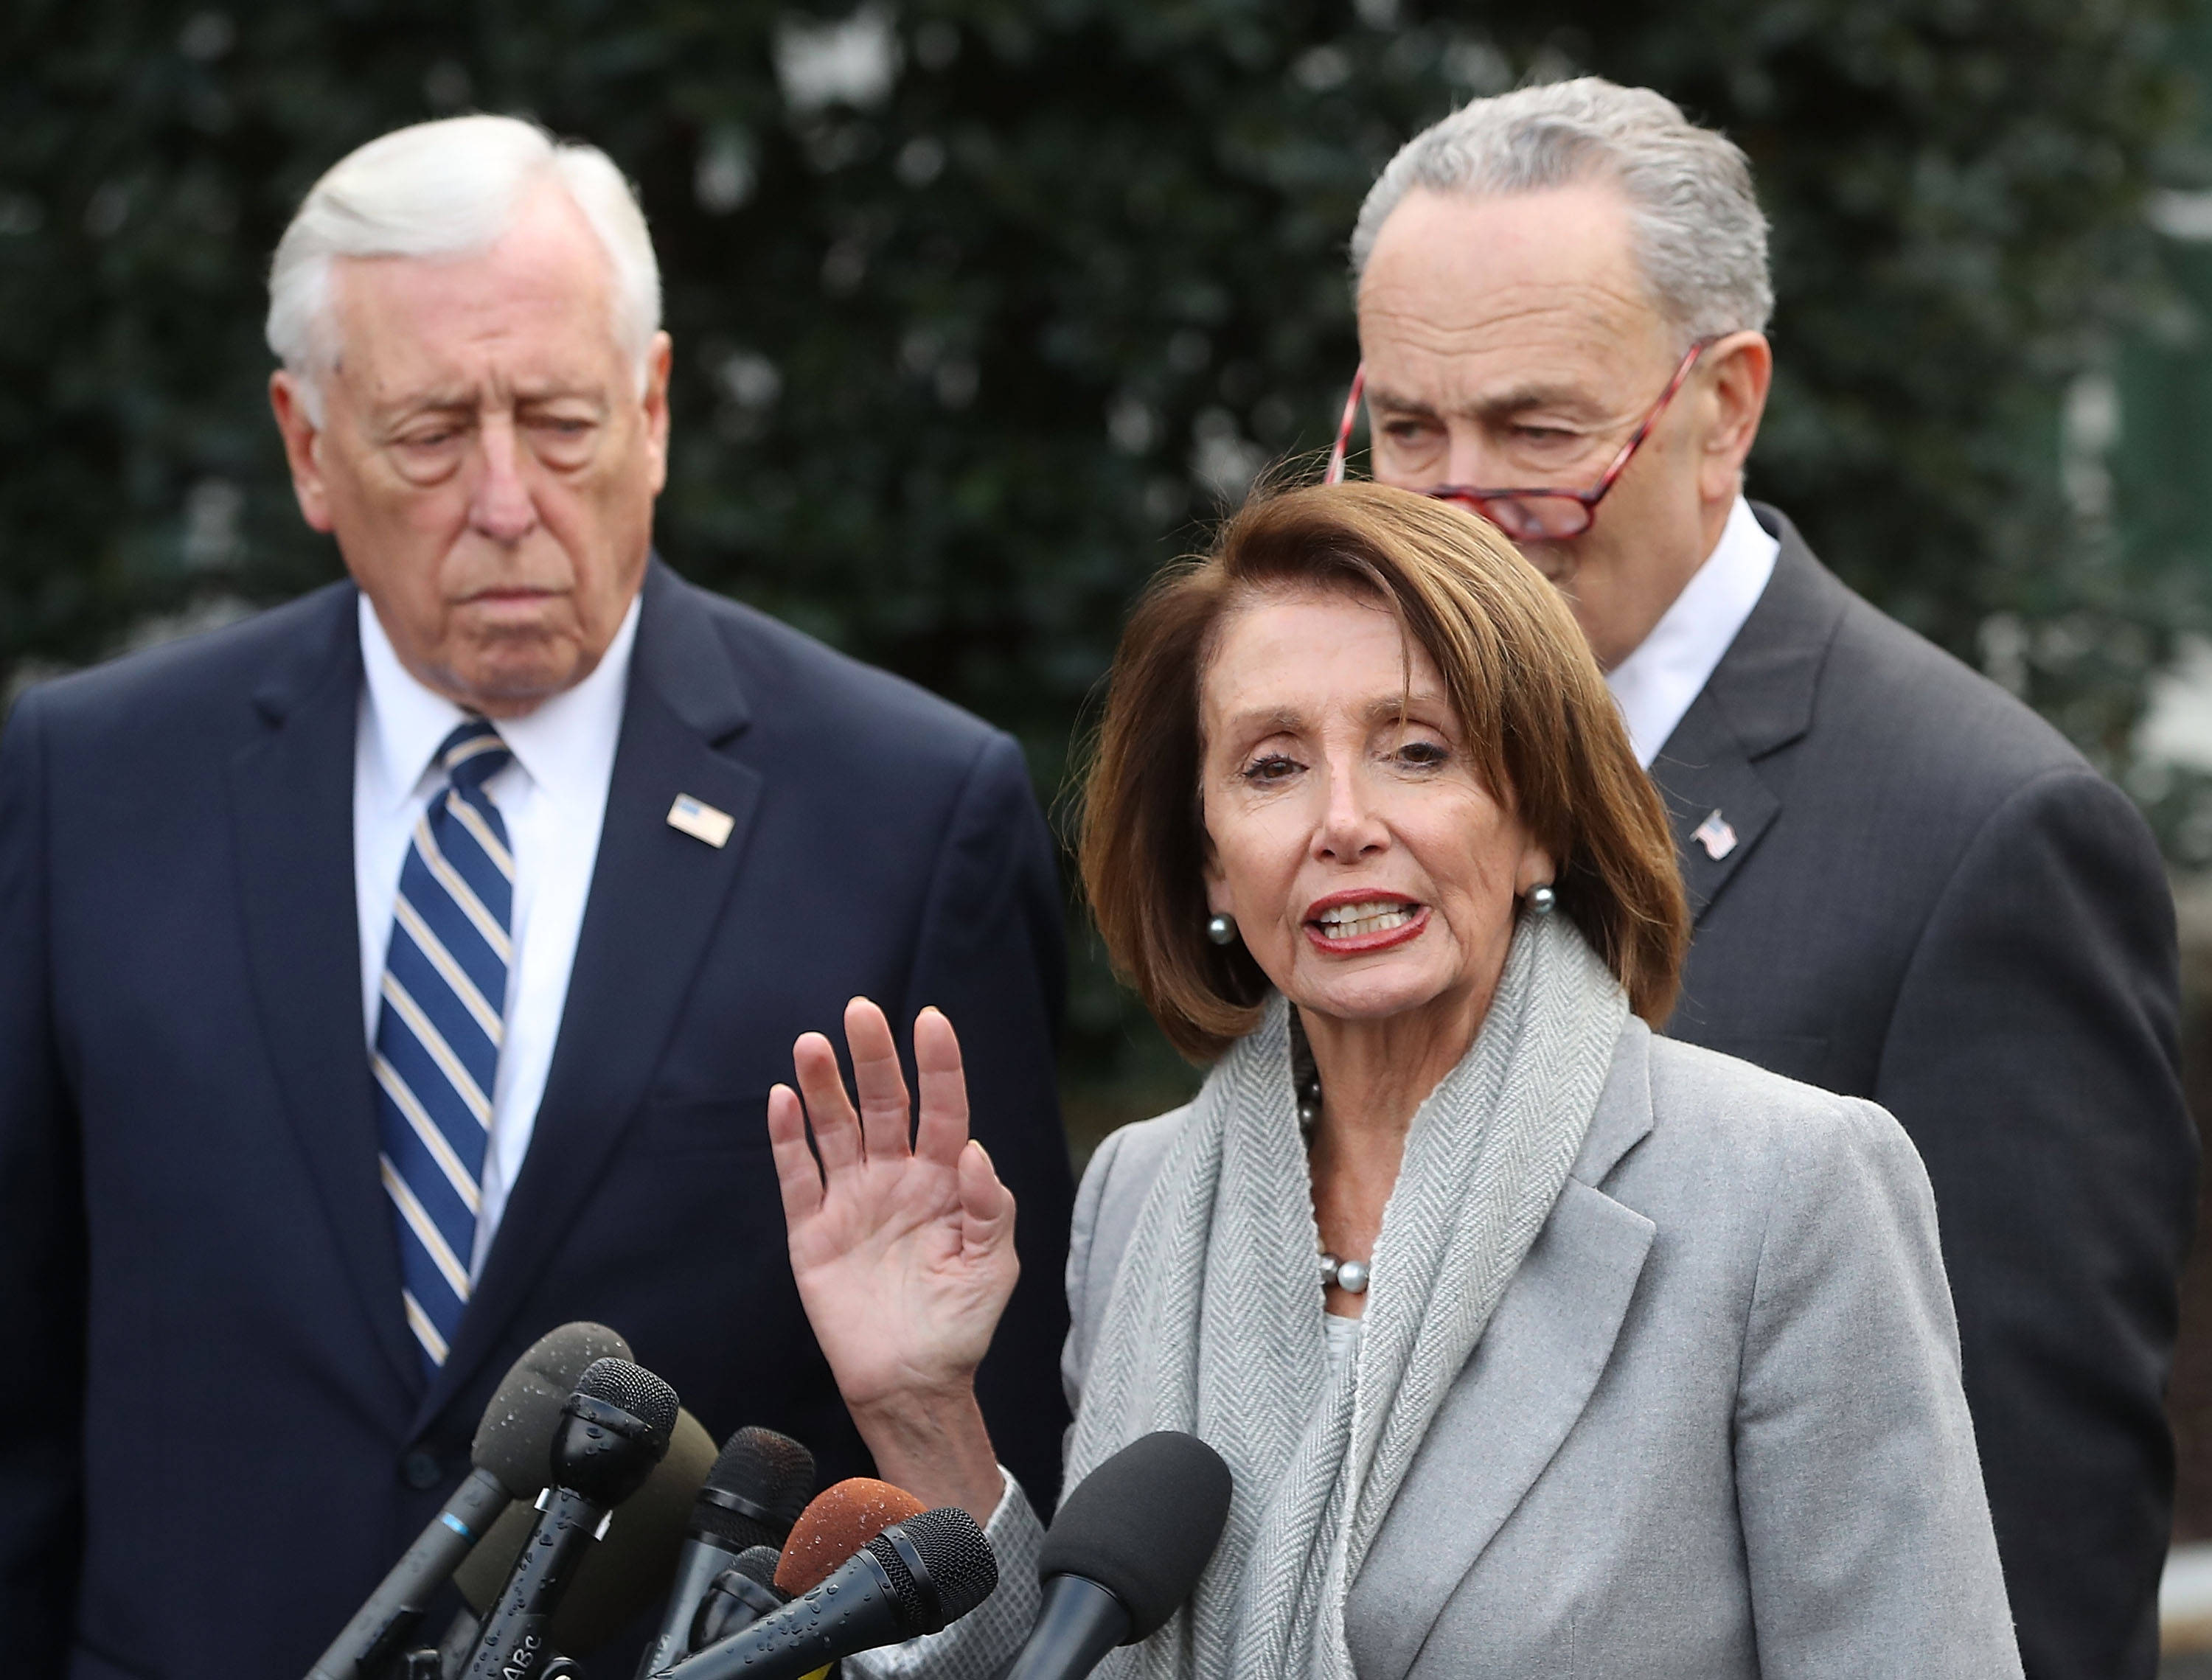 House Speaker Nancy Pelosi speaks while flanked by House Majority Leader Steny Hoyer (L) and Senate Minority Leader Charles Schumer, at the White House after meeting with U.S. President Donald Trump about ending the partial government shutdown, on January 9, 2019 in Washington, DC. (Photo by Mark Wilson/Getty Images)